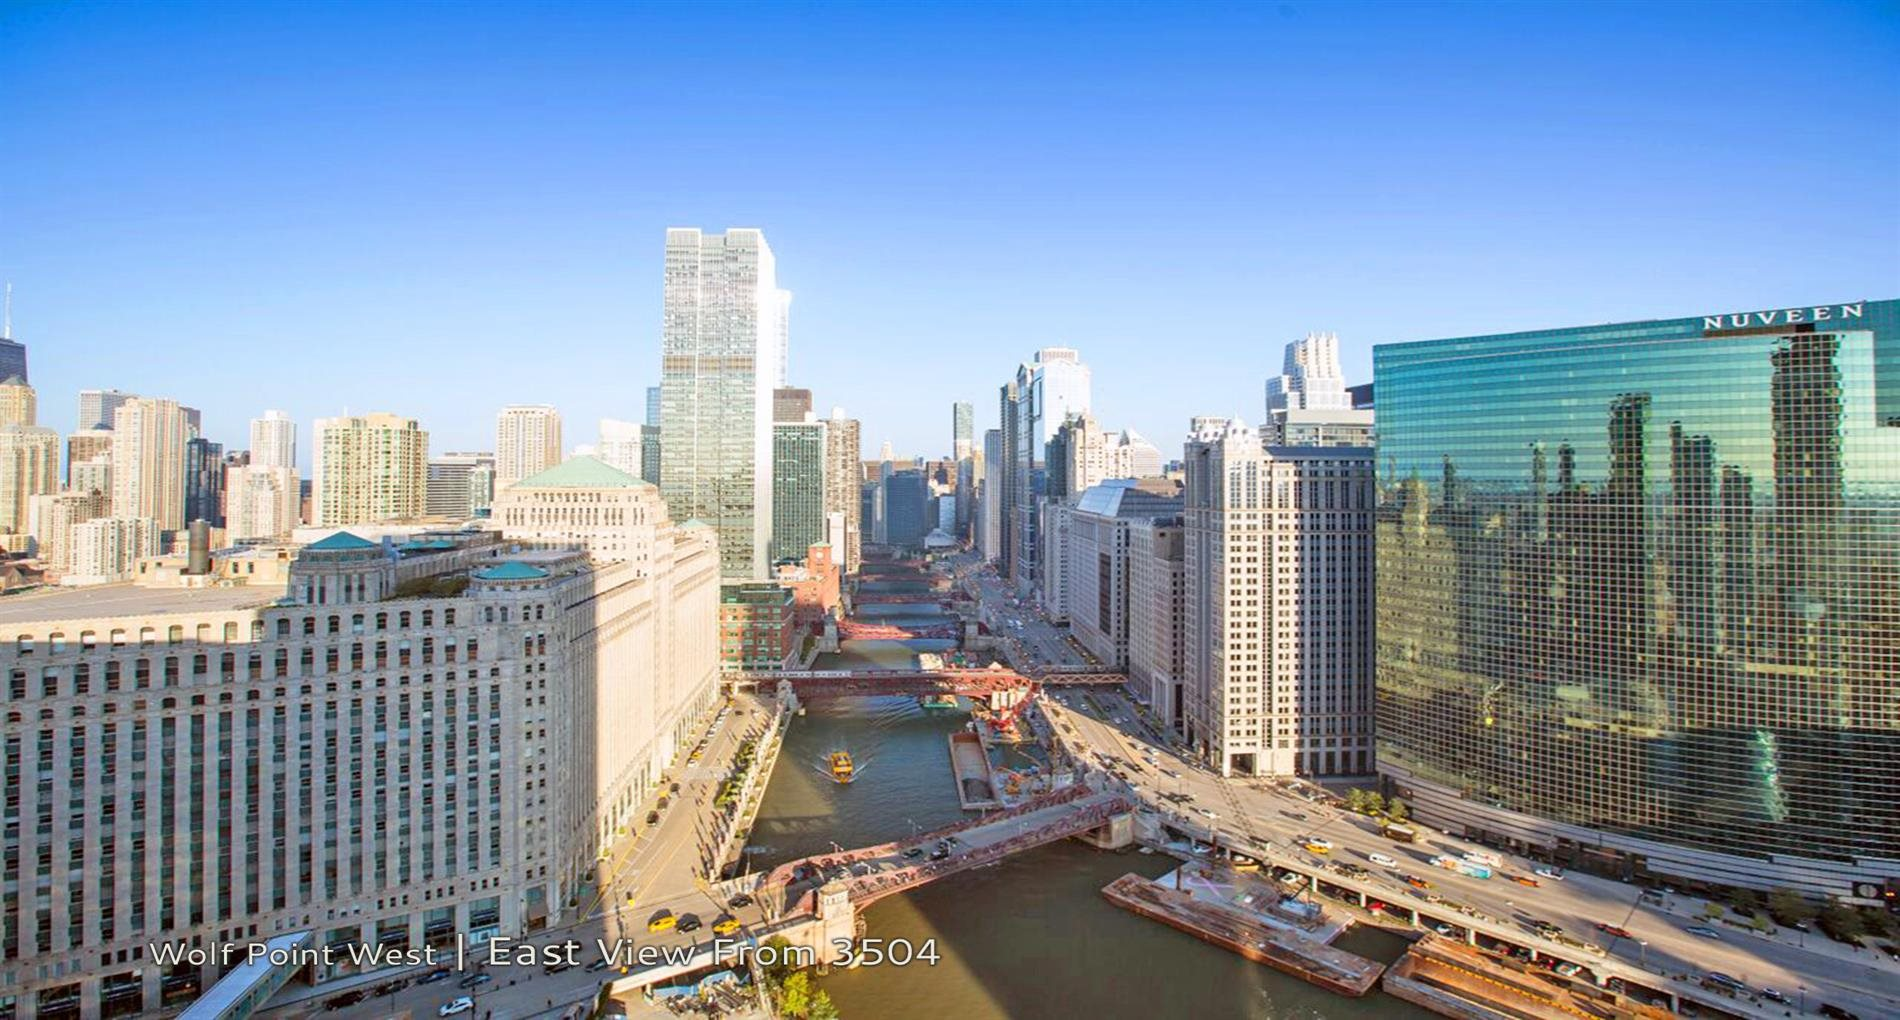 Wolf Point West | East View From 3504